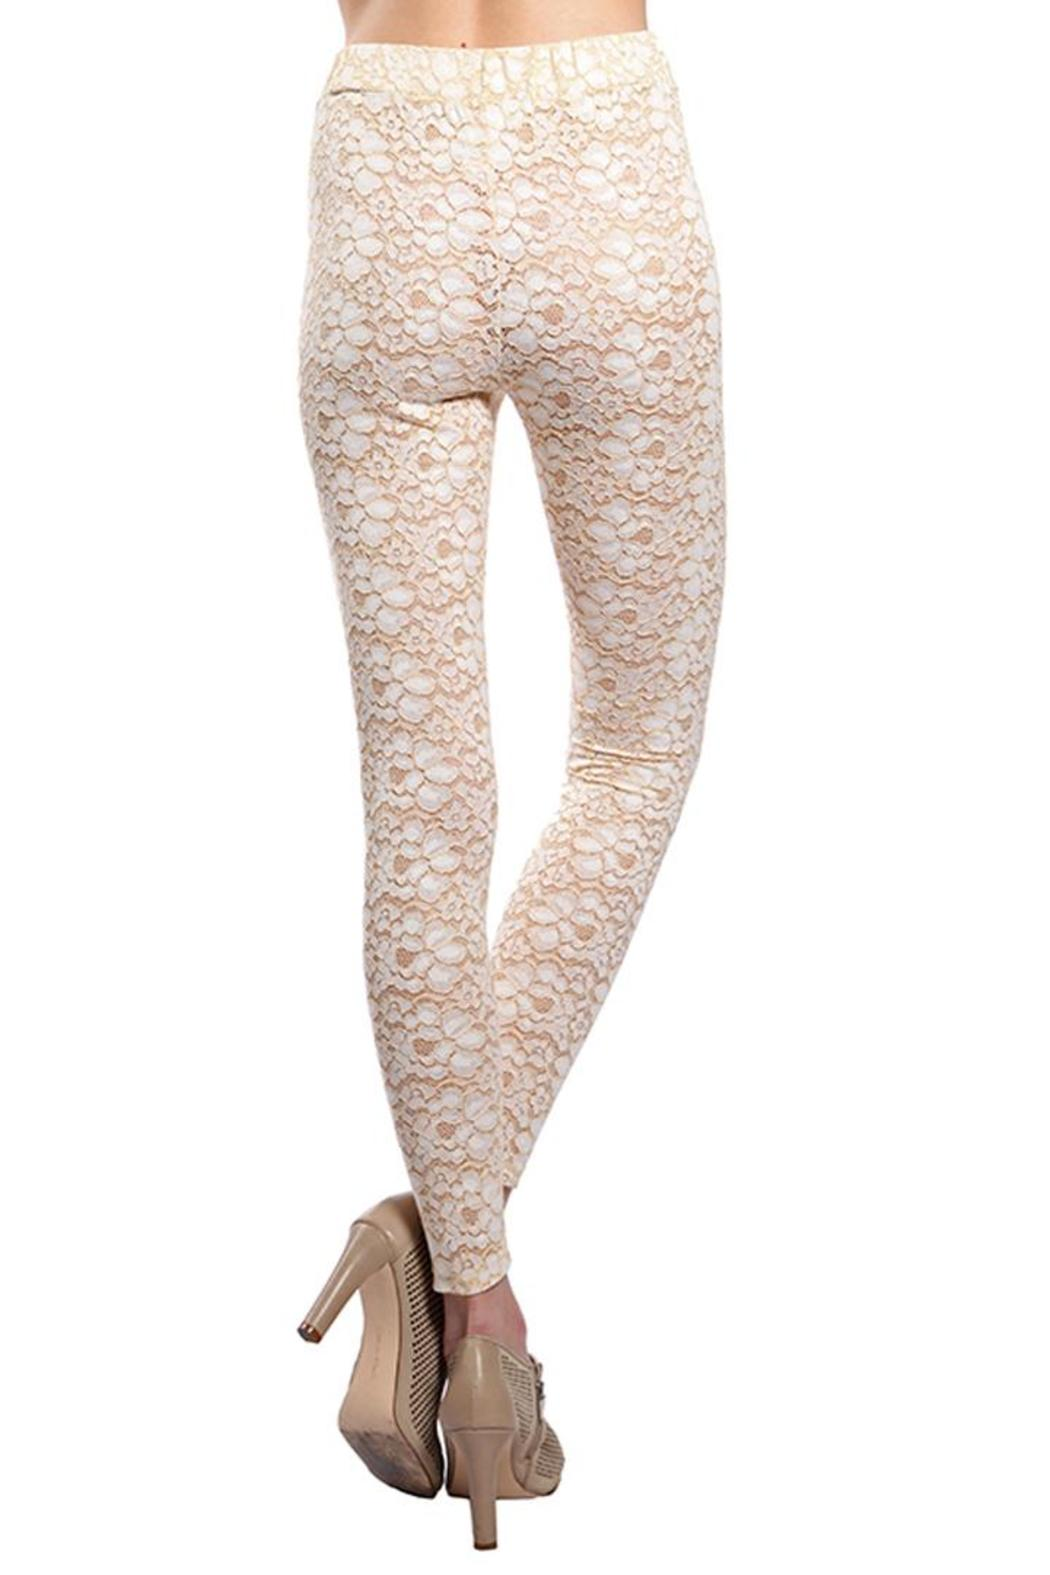 Ryu Lace Leggings From Colorado By Daisy In A Bottle